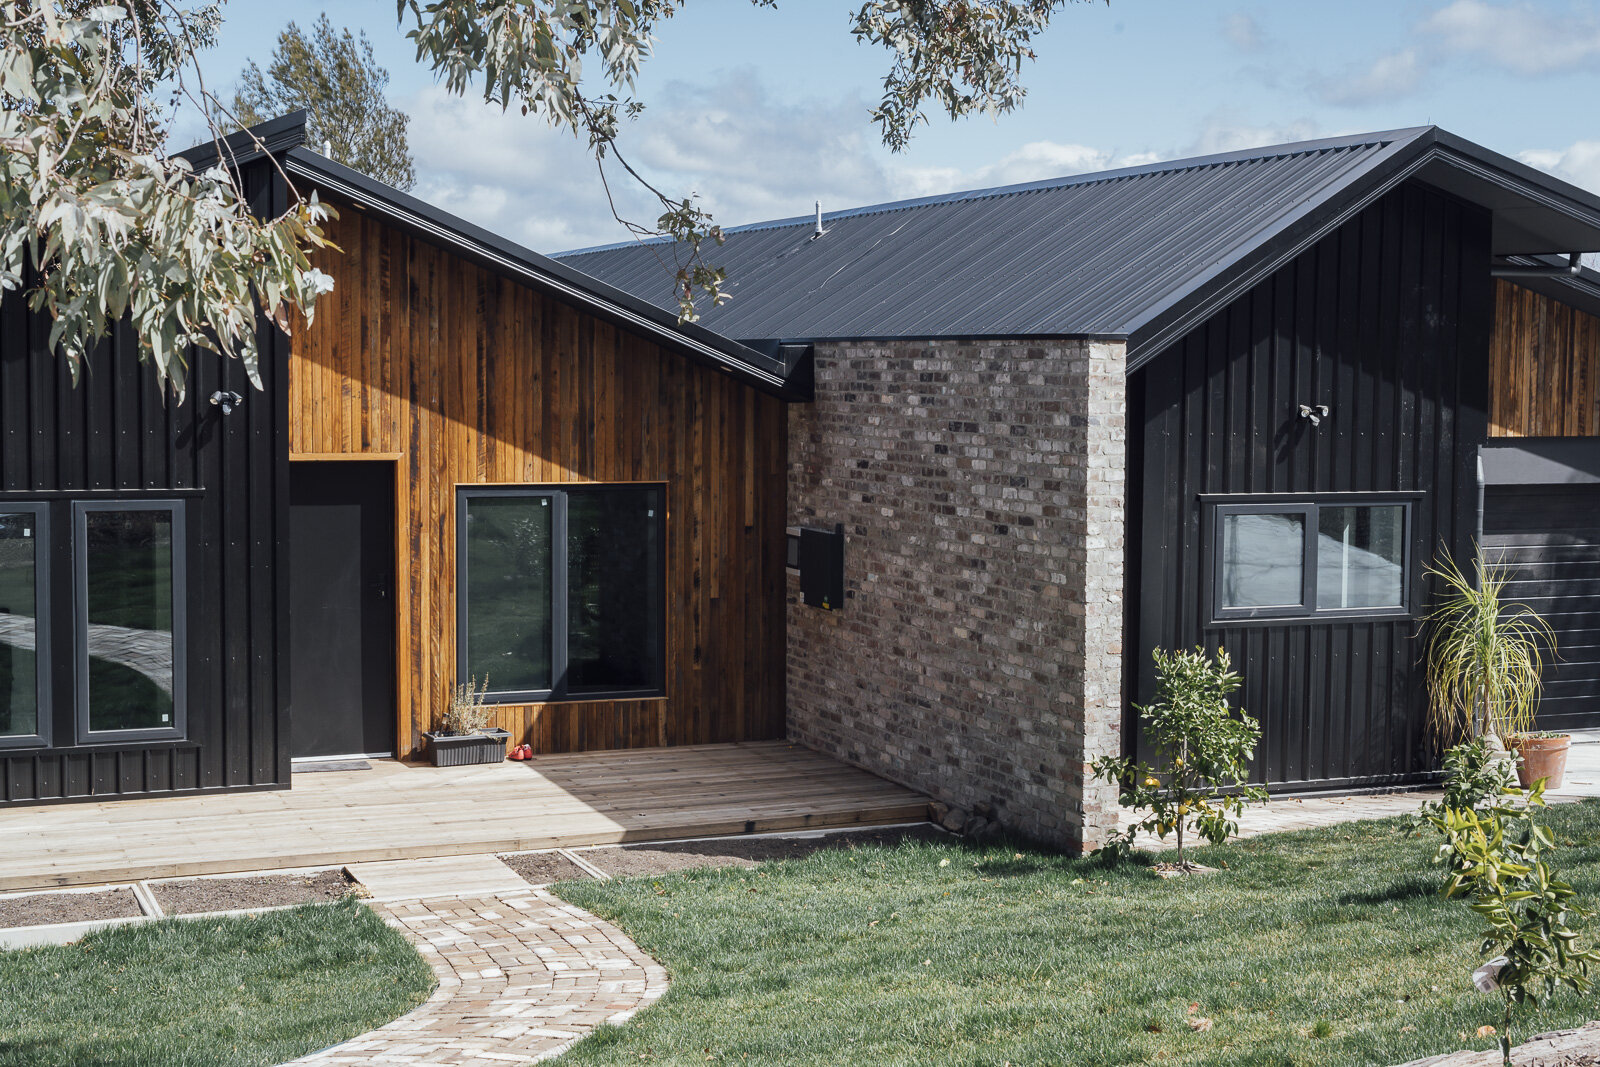 The black insulated panels, recycled Blackbutt cladding & decking, and double glazed windows.